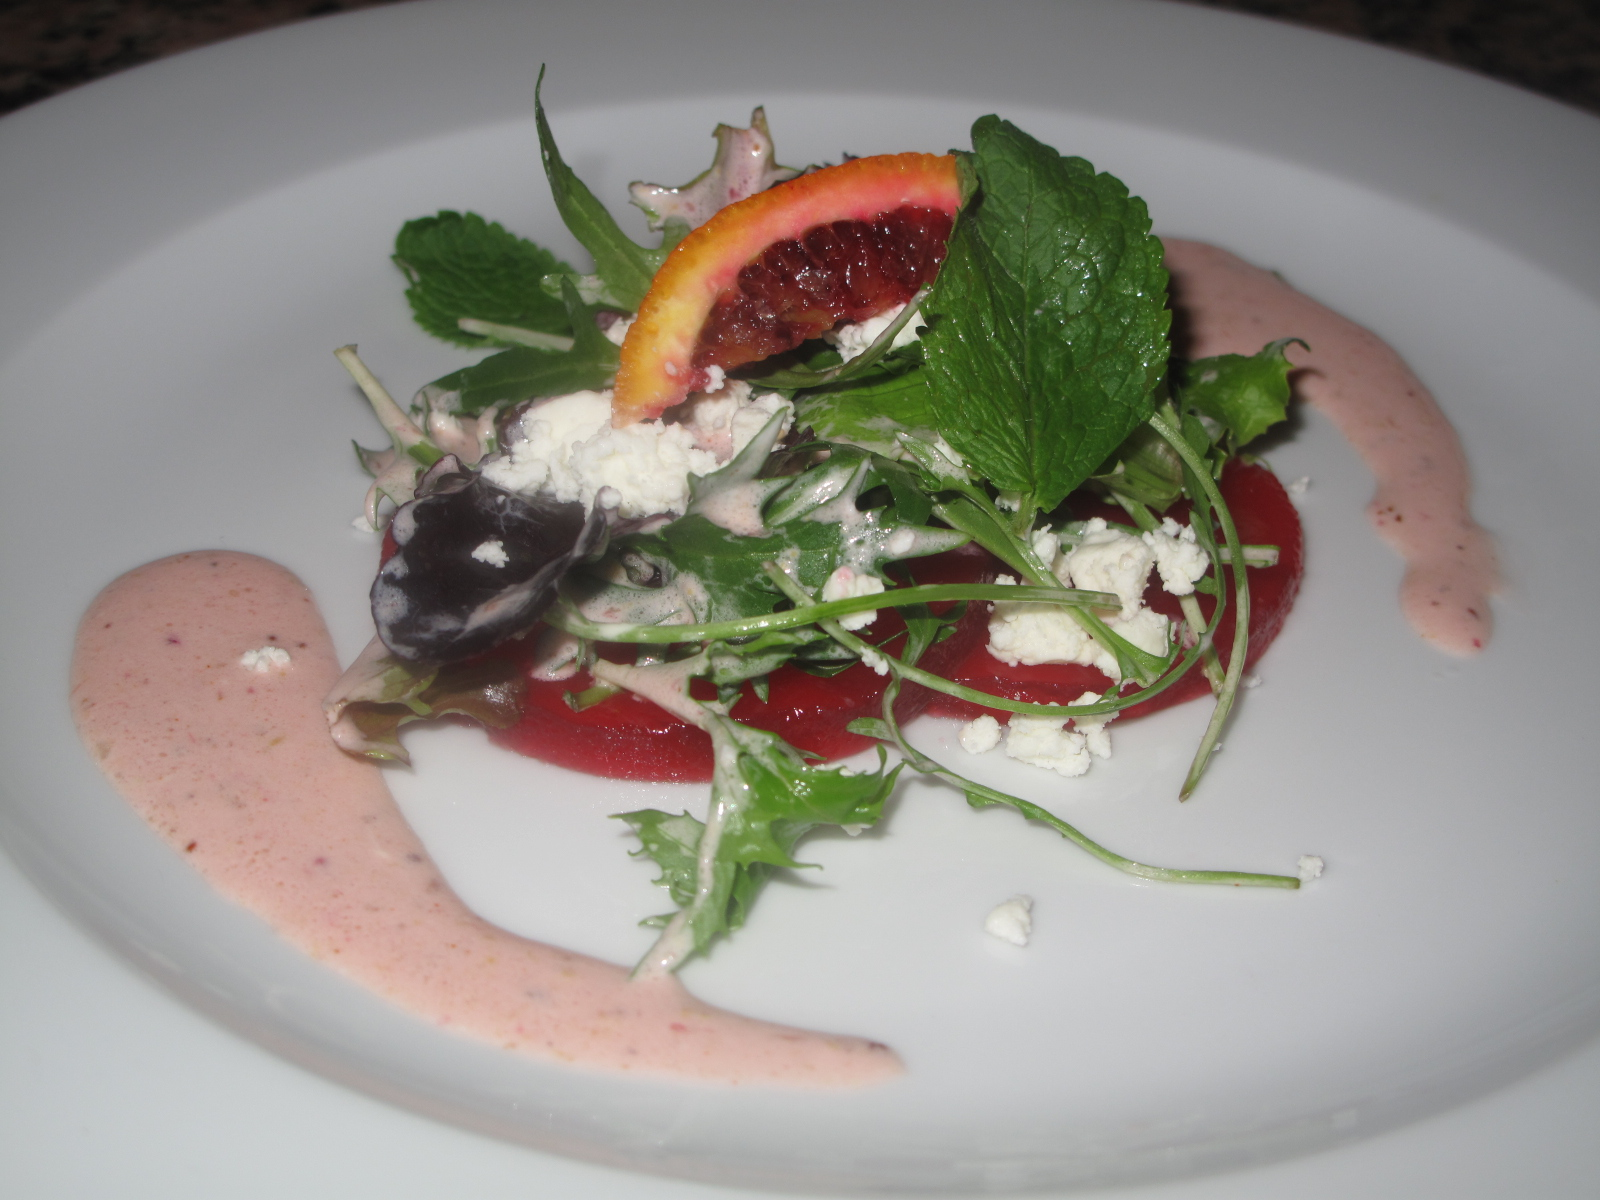 Carpaccio of blood oranges with a green salad